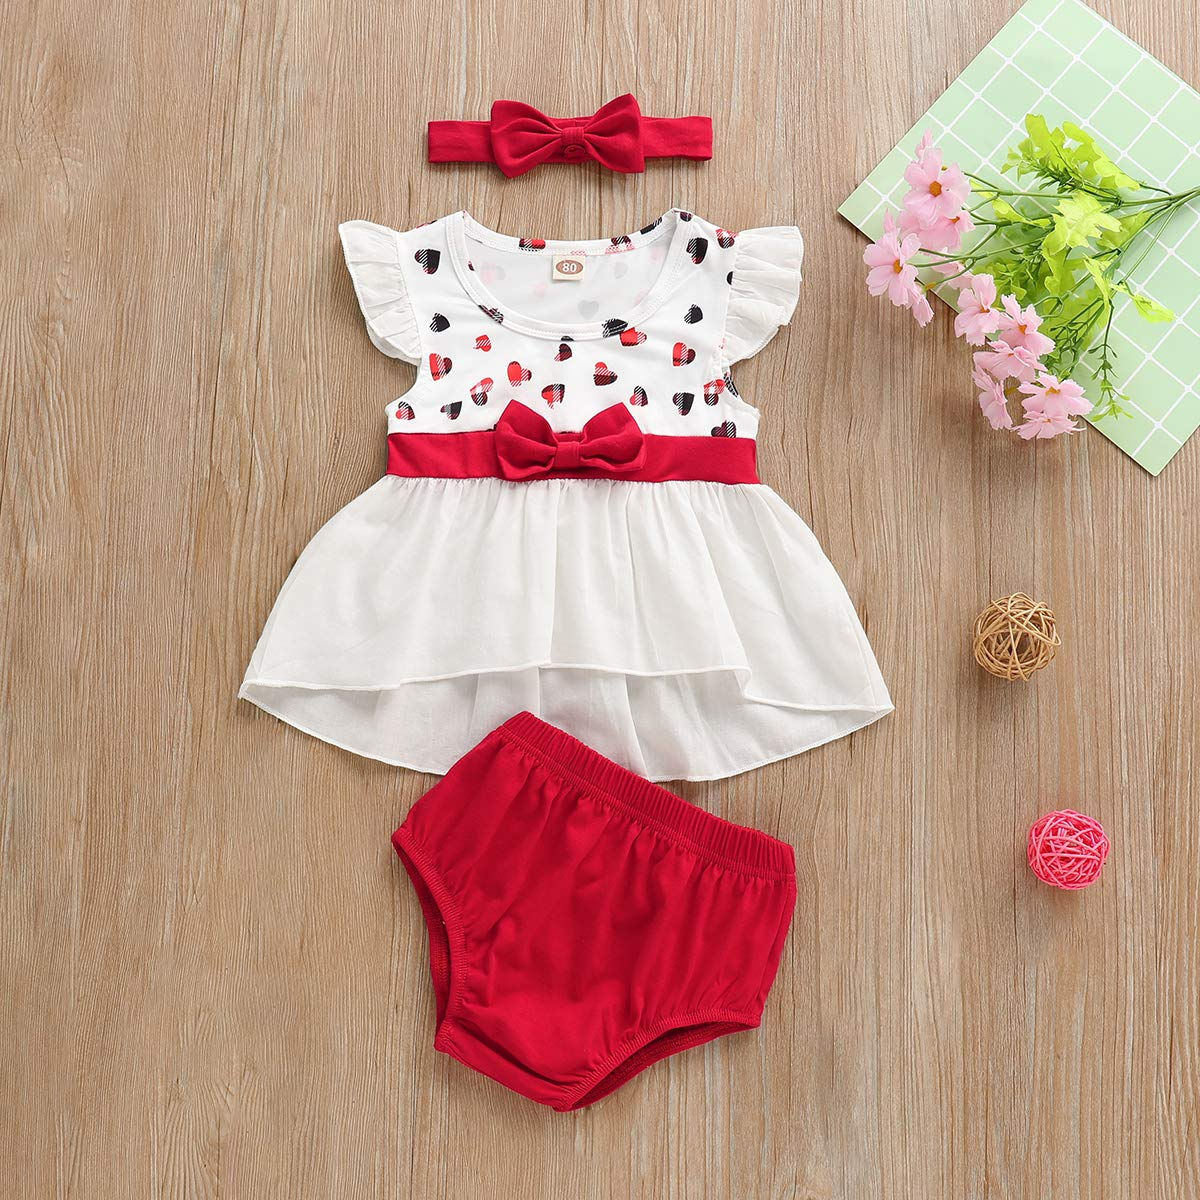 White, 100 Baby Girl Clothes Short Sleeve Summer Dress Outfits Pants Shorts 3Pcs Set for Infant and Toddler Baby 2-3T